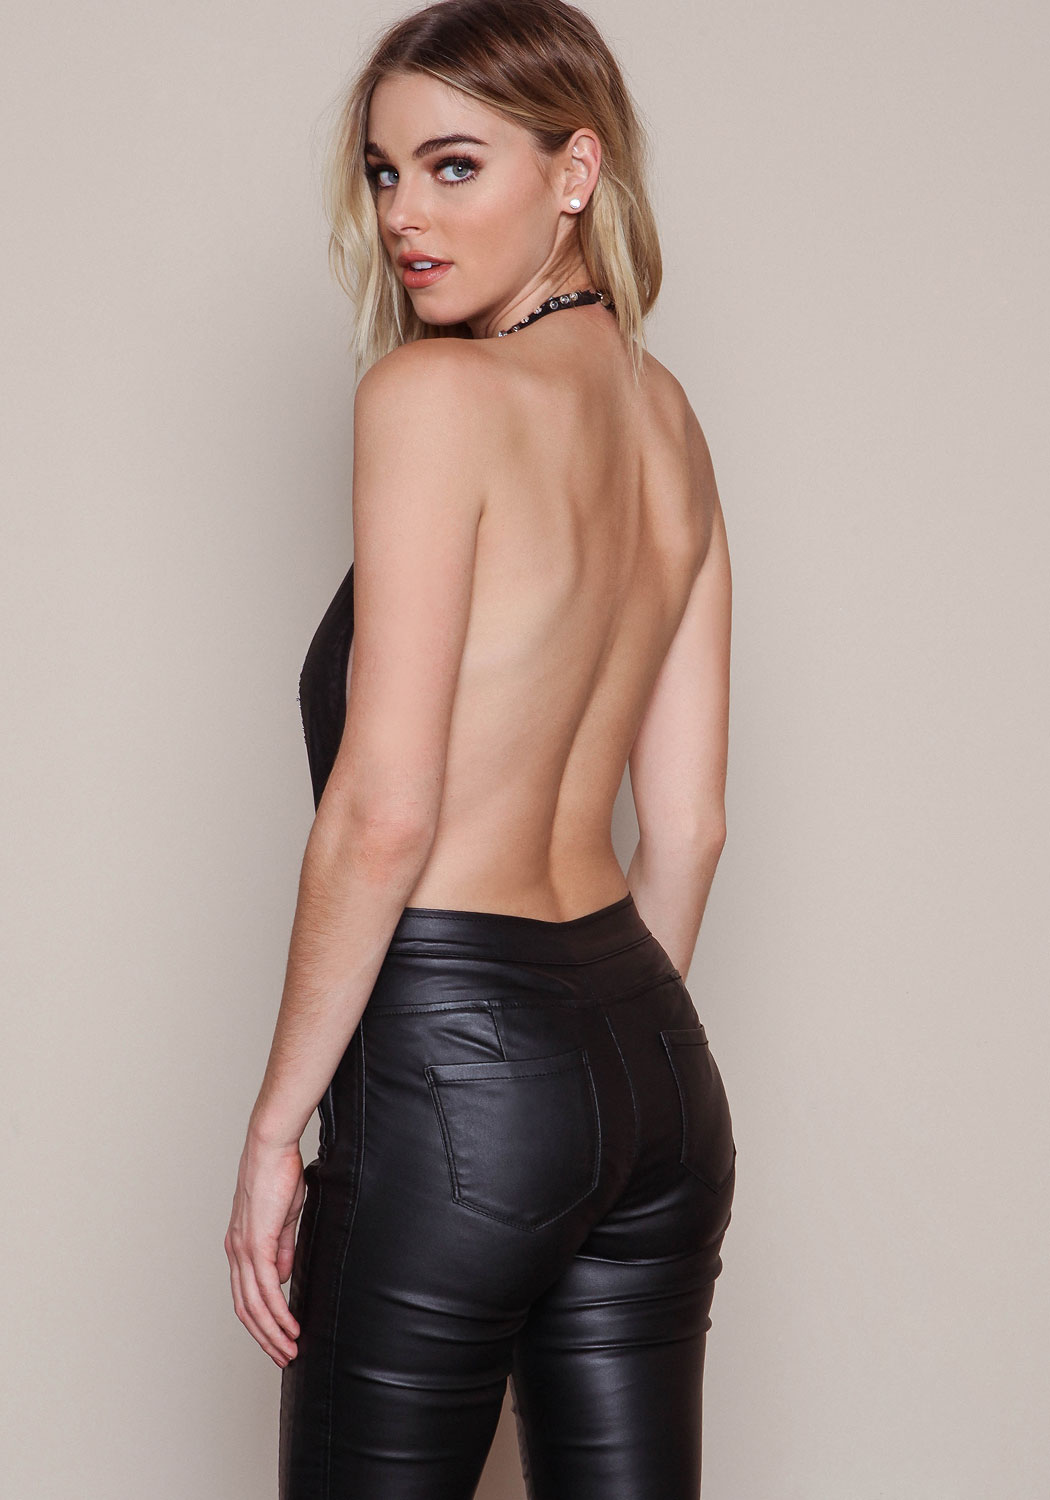 Lovely Ladies in Leather: Elizabeth Turner in leather pants